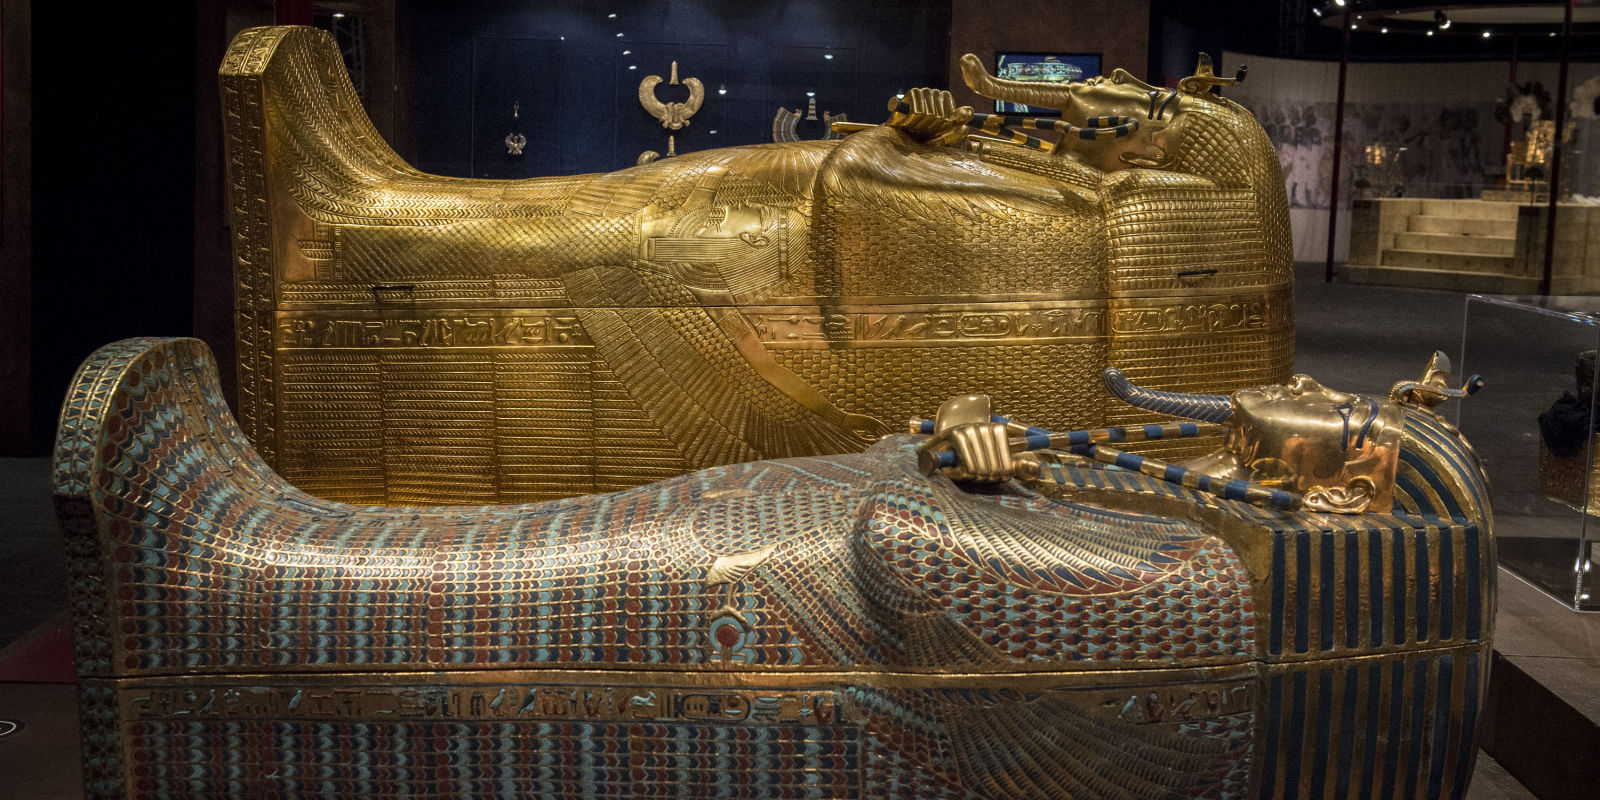 King Tut Tomb Discovery: Hidden Rooms In King Tut's Tomb Revealed By Ultrasounds Scans